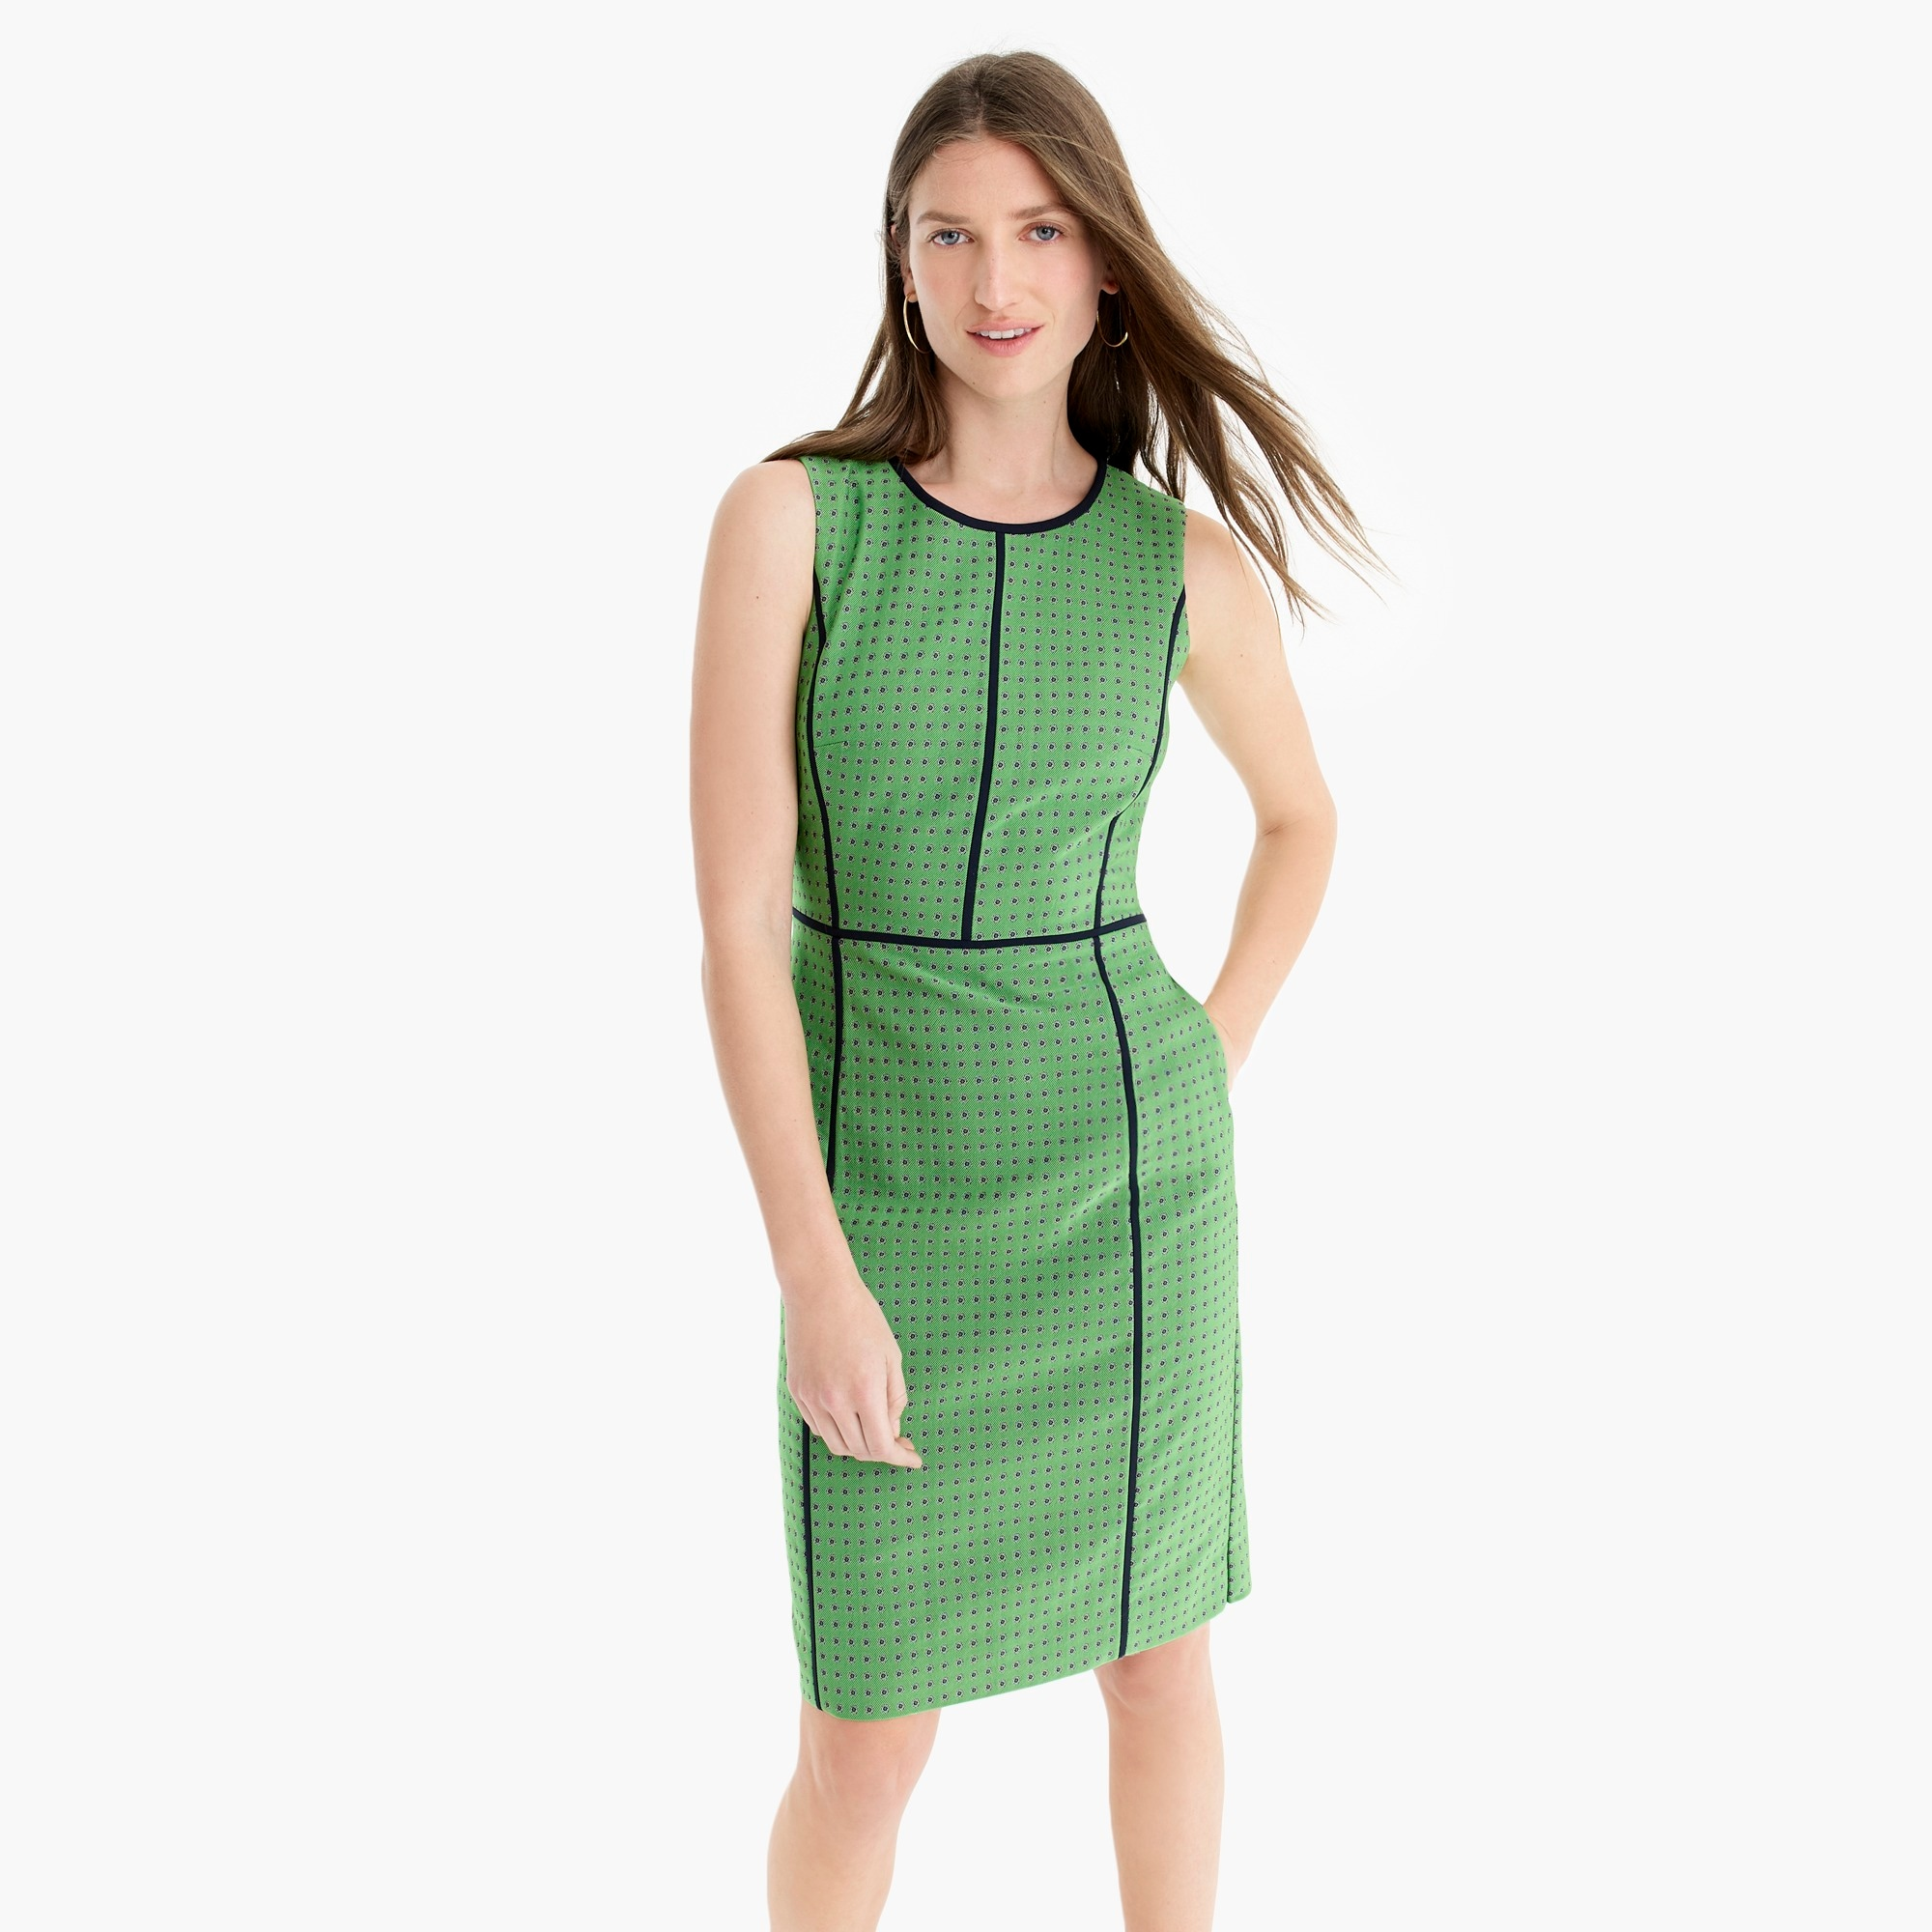 Petite paneled sheath dress